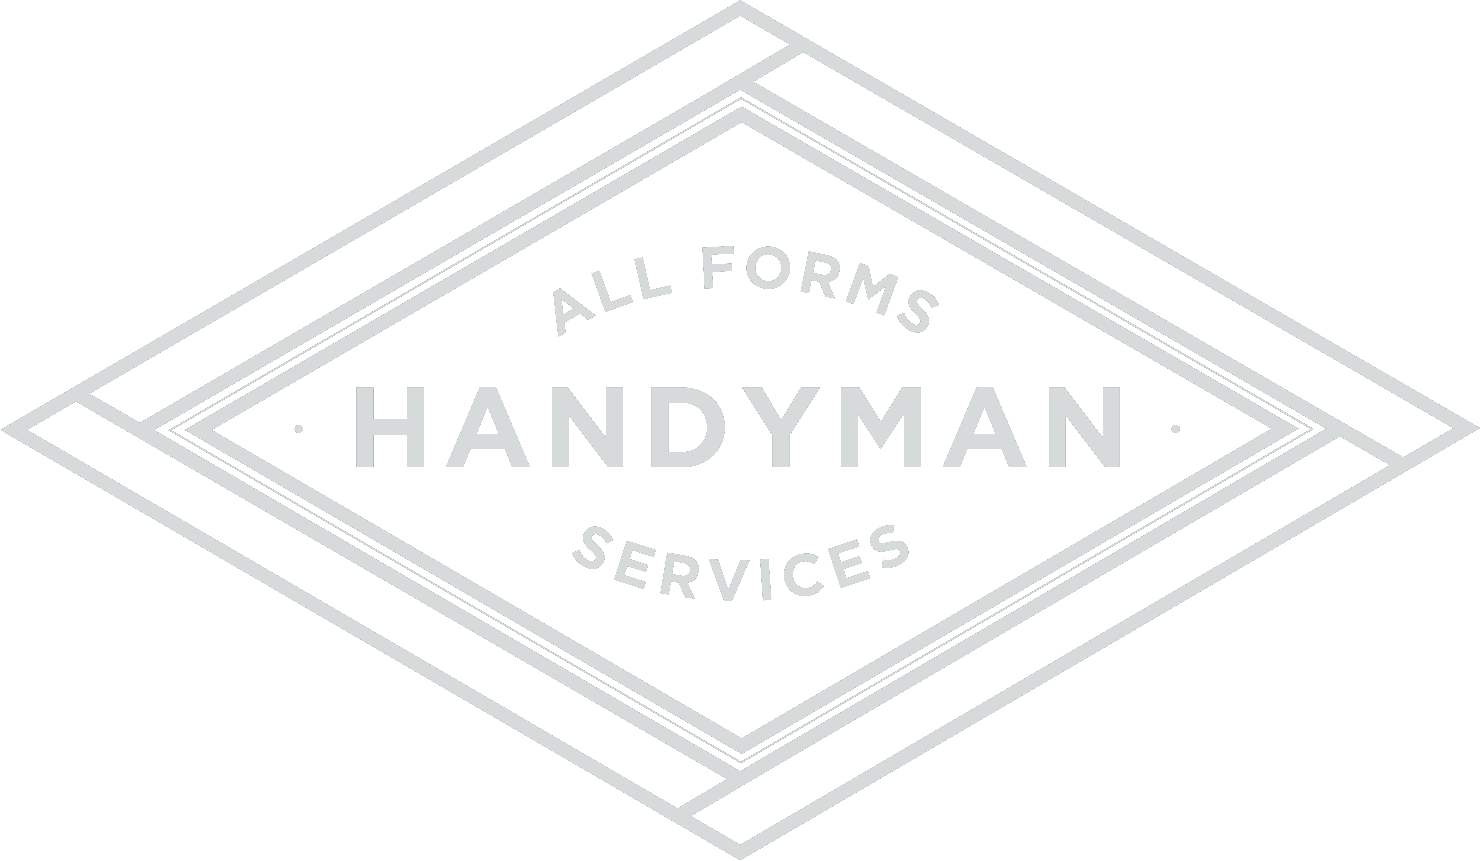 All Forms Handyman Services Cardiff